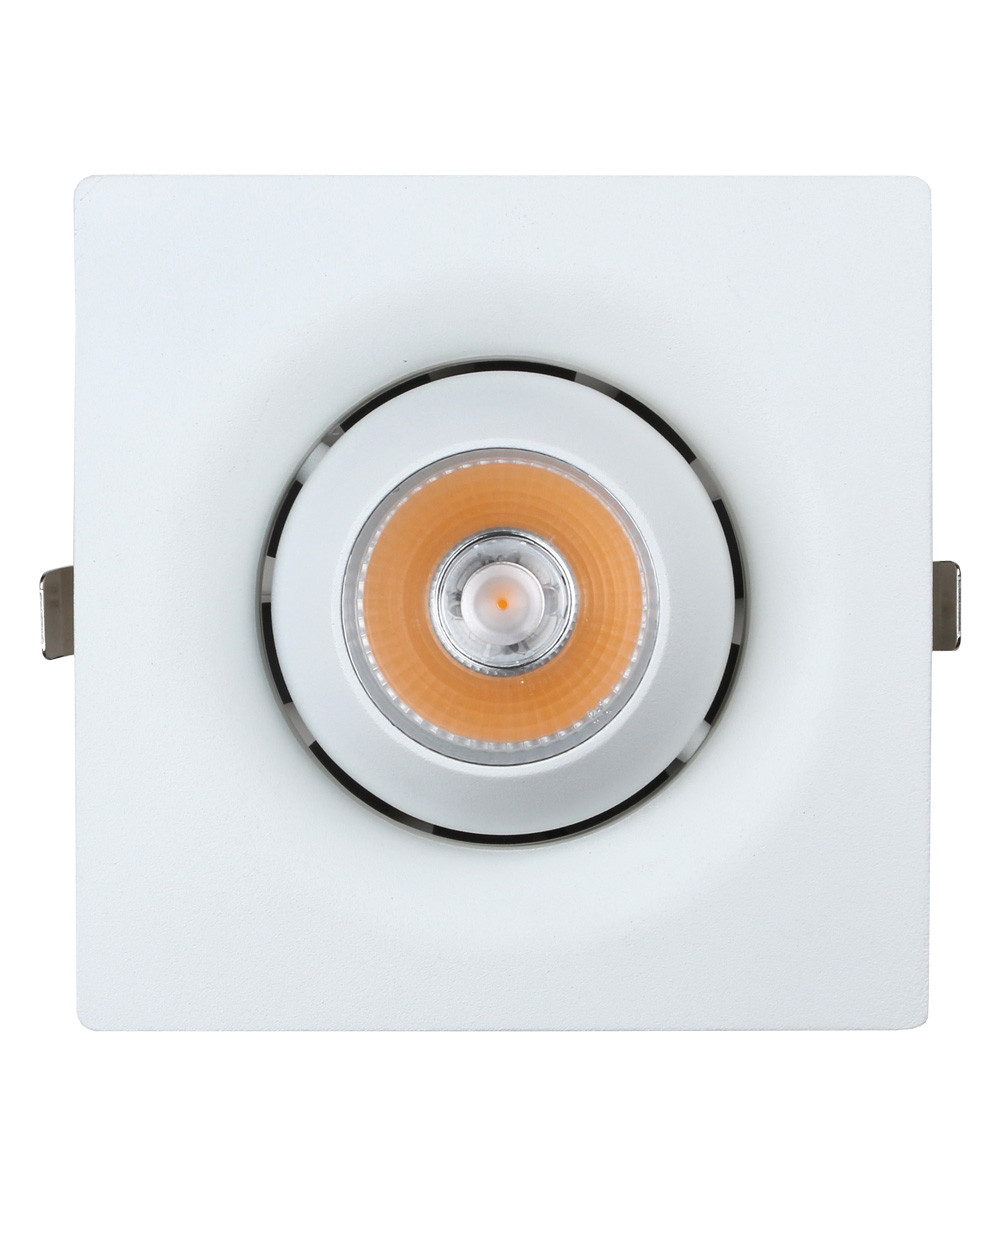 KAYLE-S 20W Oynar Başlı Led Downlight - ALC.659-A